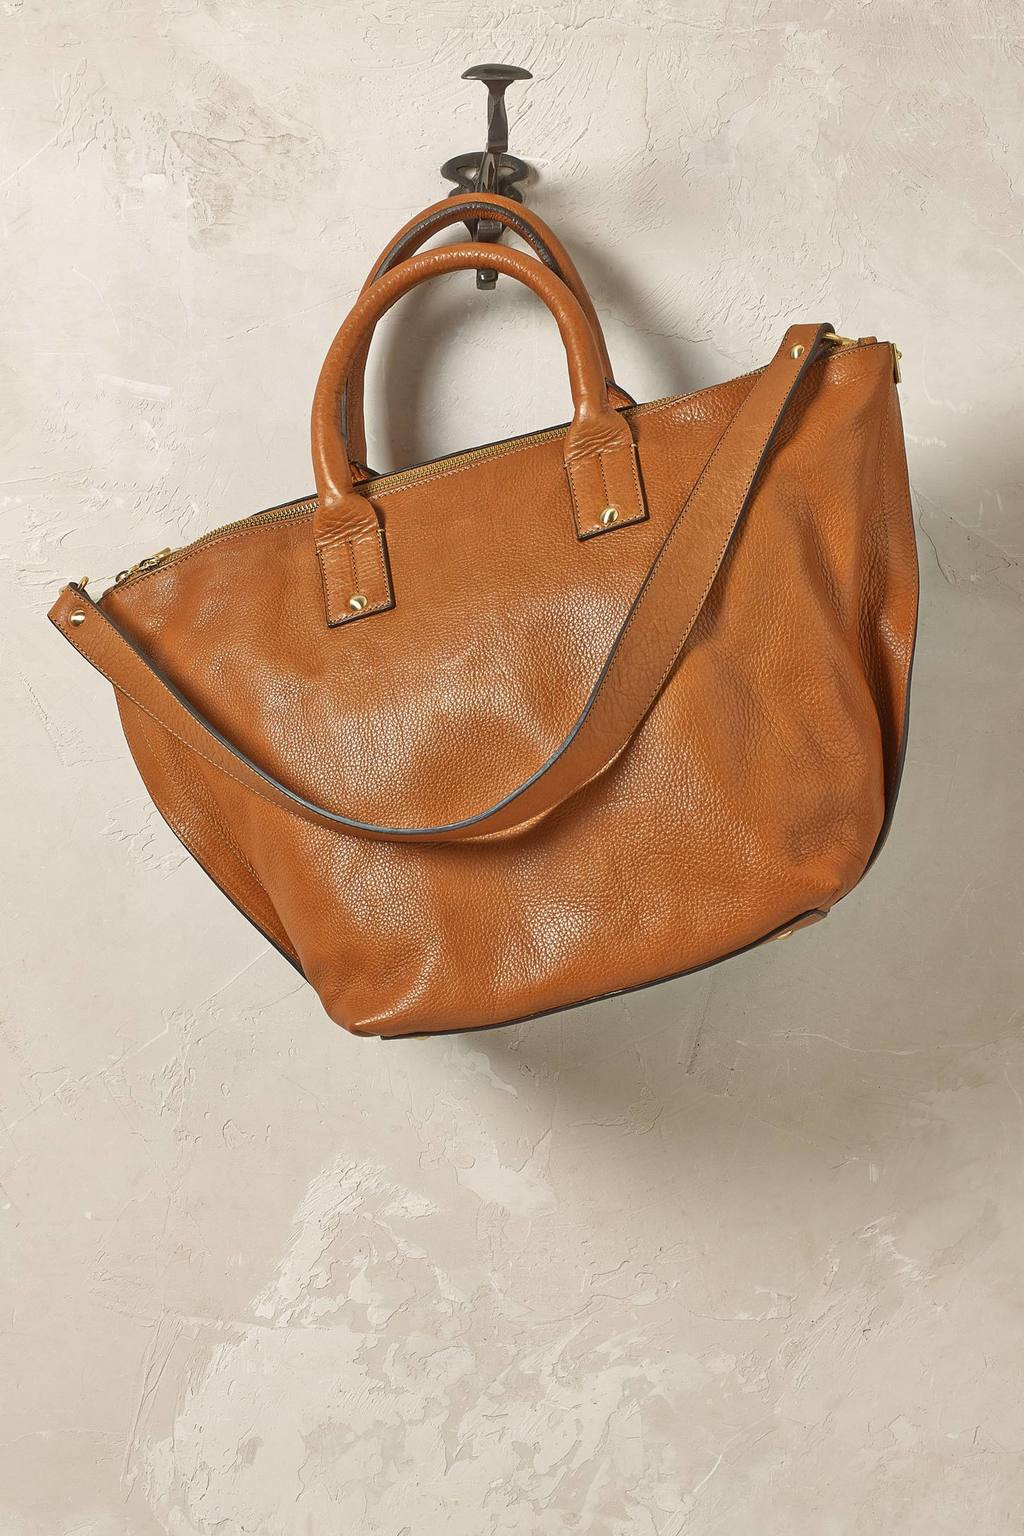 Milana Shoulder Bag - predominant colour: tan; occasions: casual, creative work; type of pattern: standard; style: shoulder; length: handle; size: standard; material: leather; pattern: plain; finish: plain; season: s/s 2016